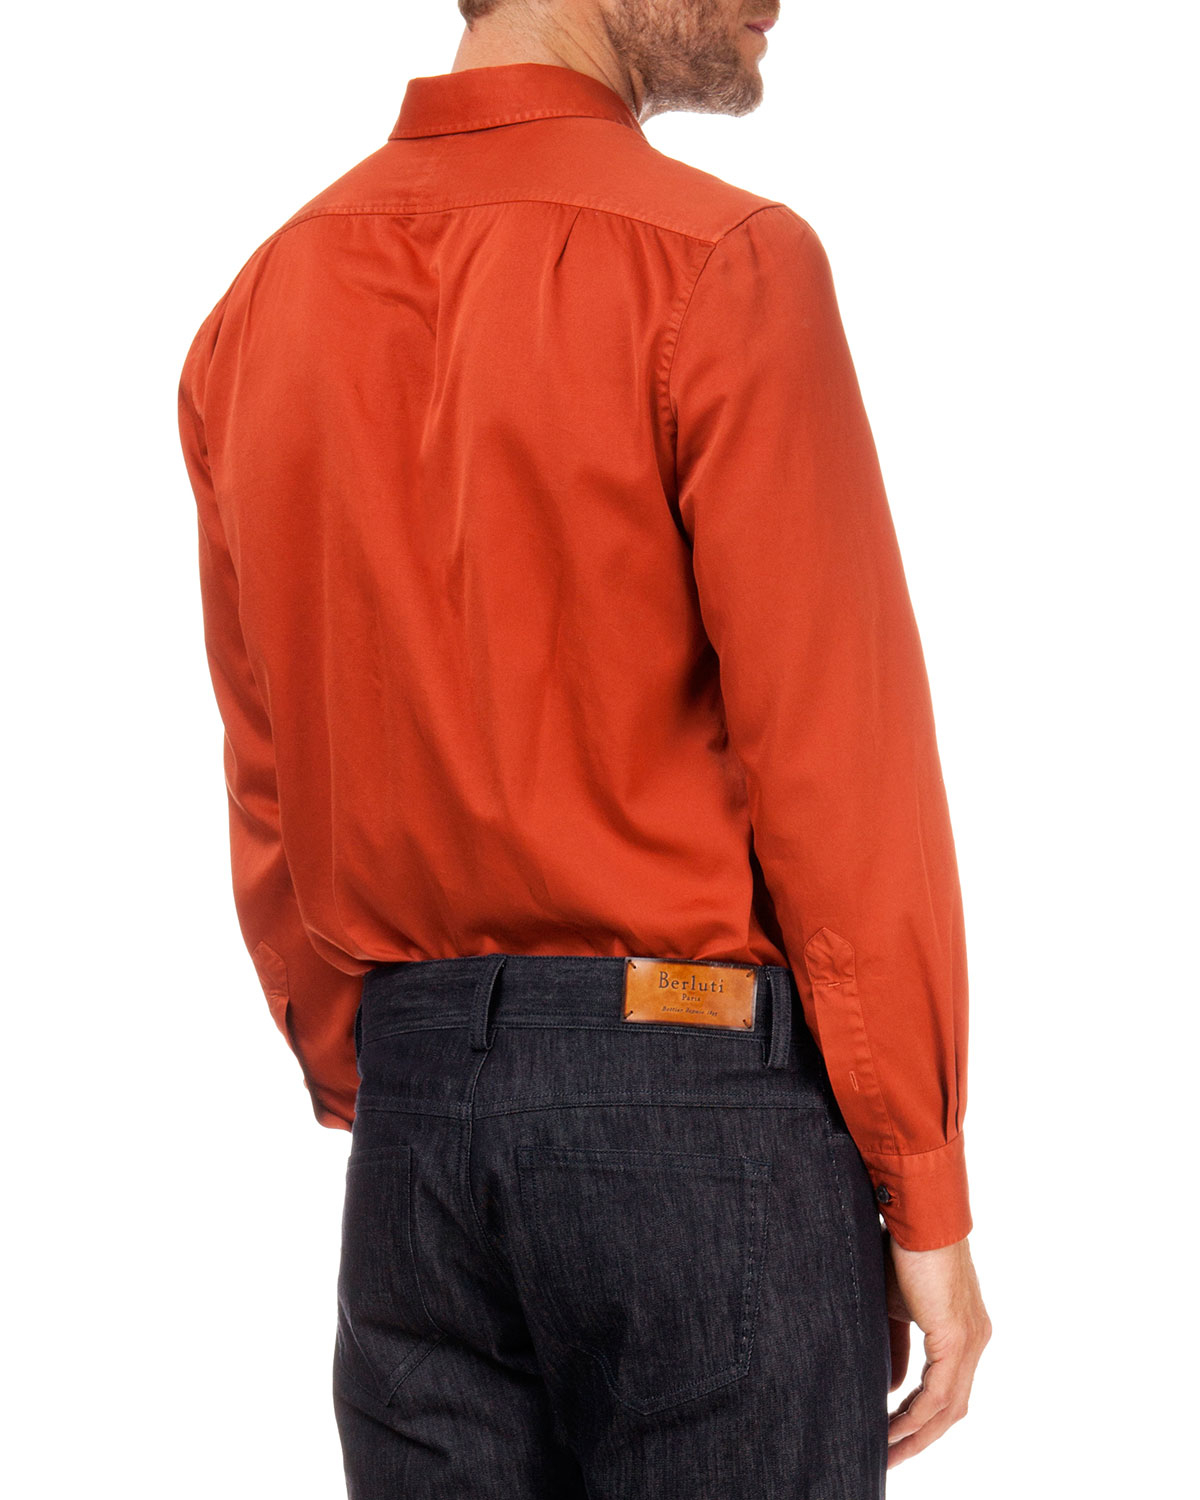 Berluti Solid Woven Button-down Shirt in Orange for Men | Lyst